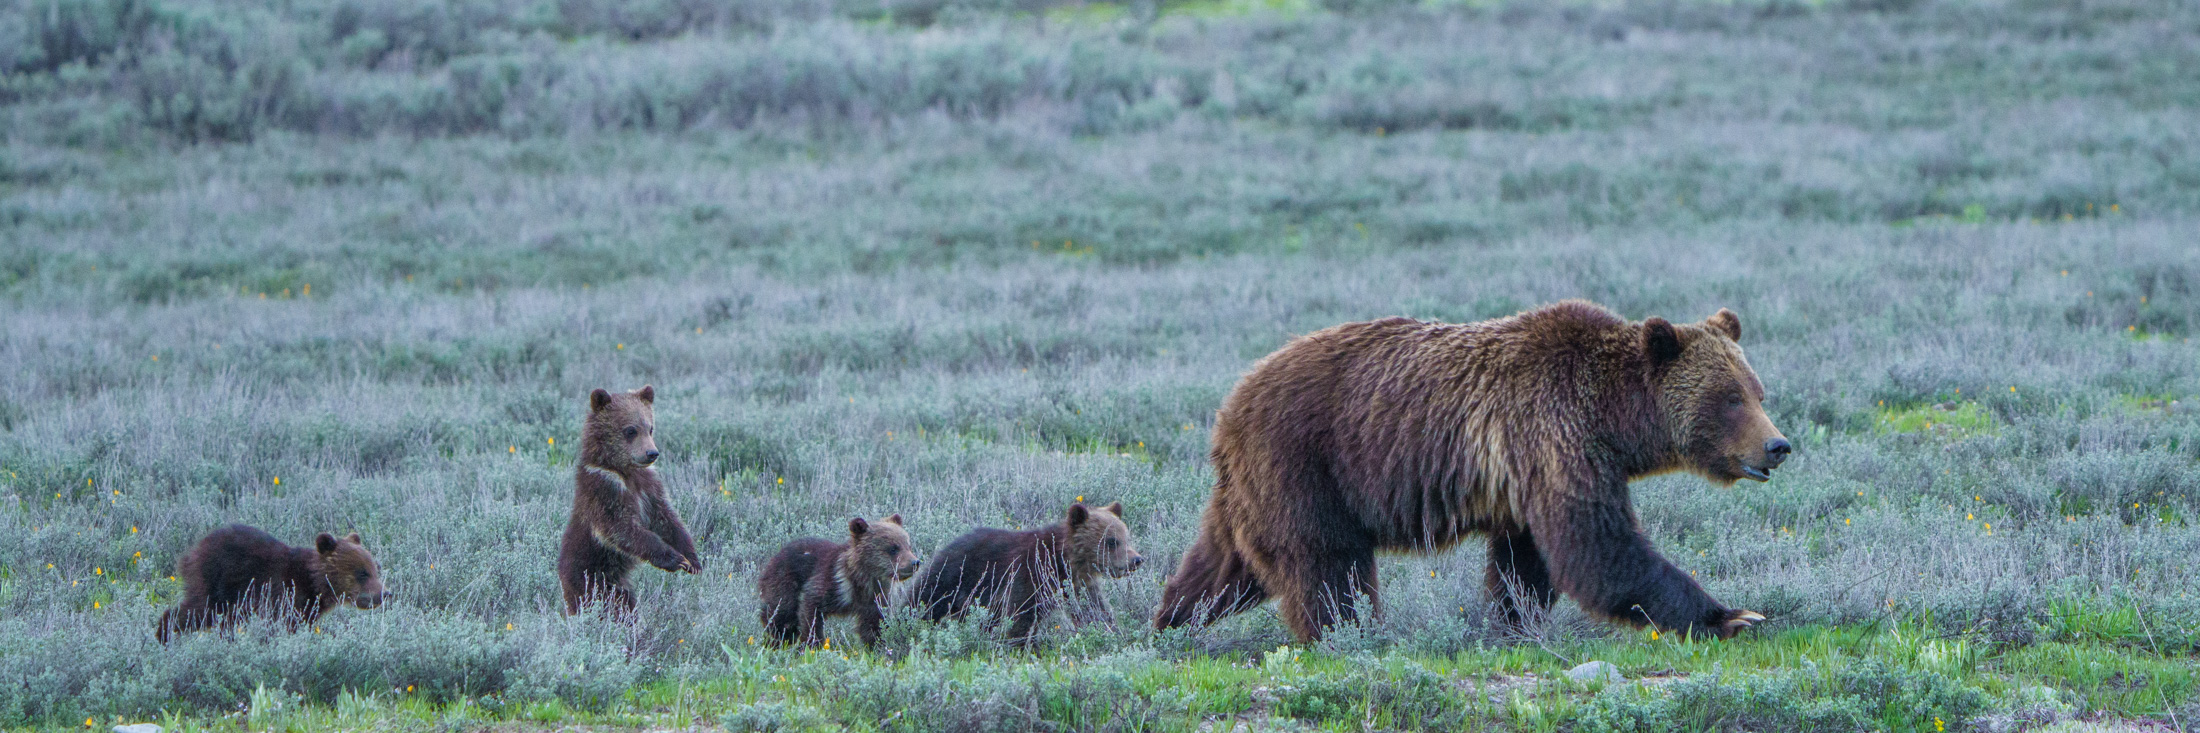 cowboy, western, Grizzly Bear Photograph, Grizzly bear picture, Grizzly bear print, , photo